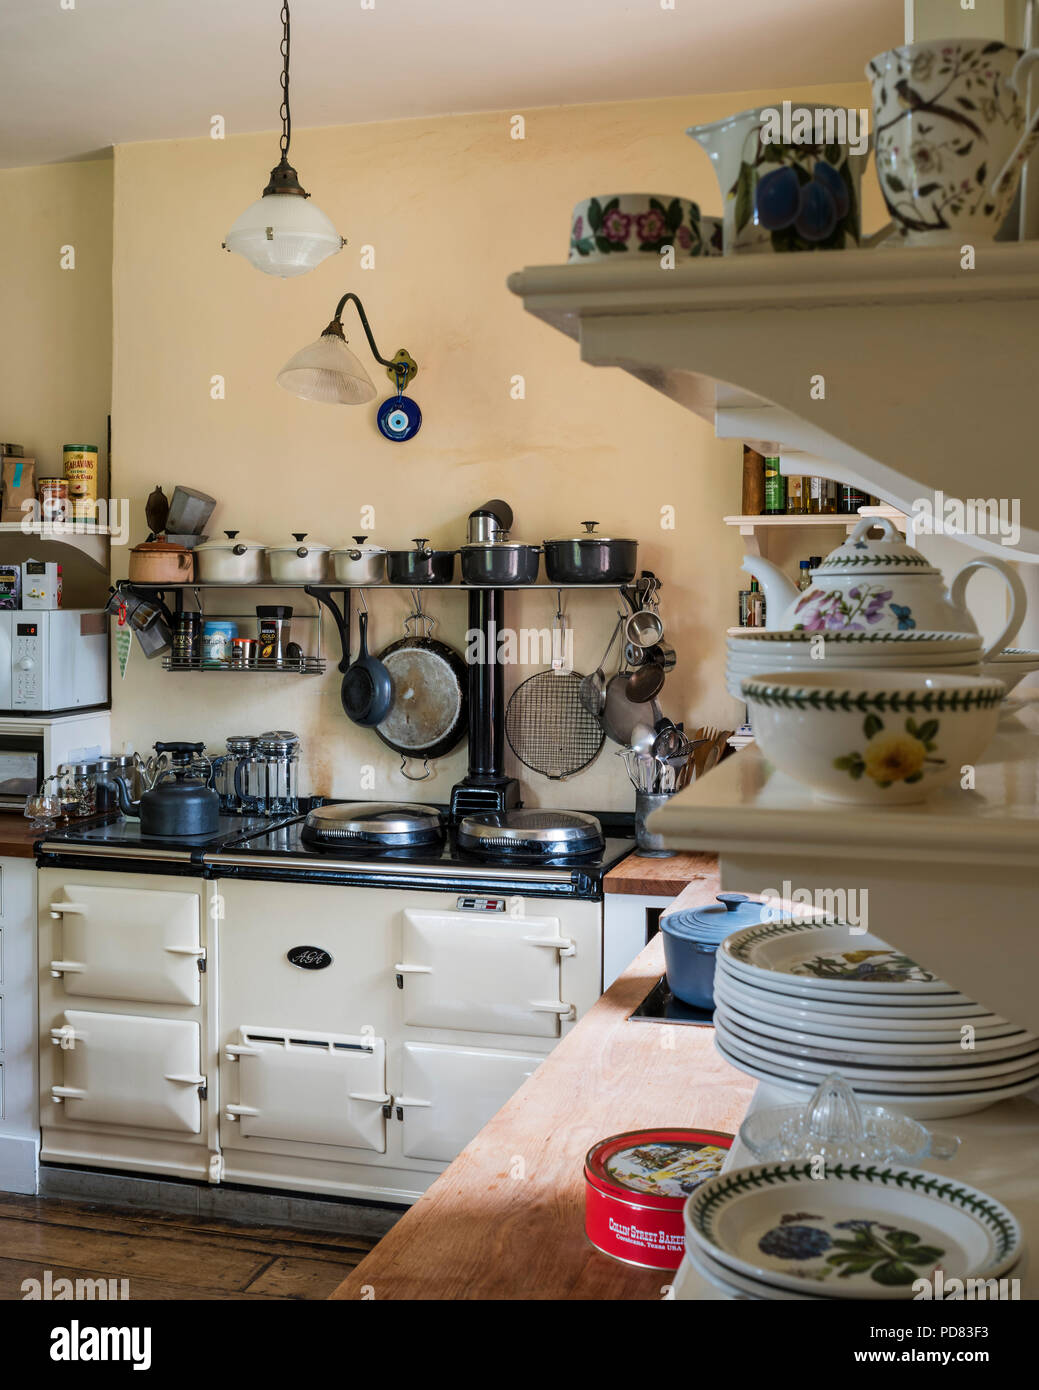 Cream Aga in country style kitchen with cabinets by Kitt Rae-Scott Stock Photo